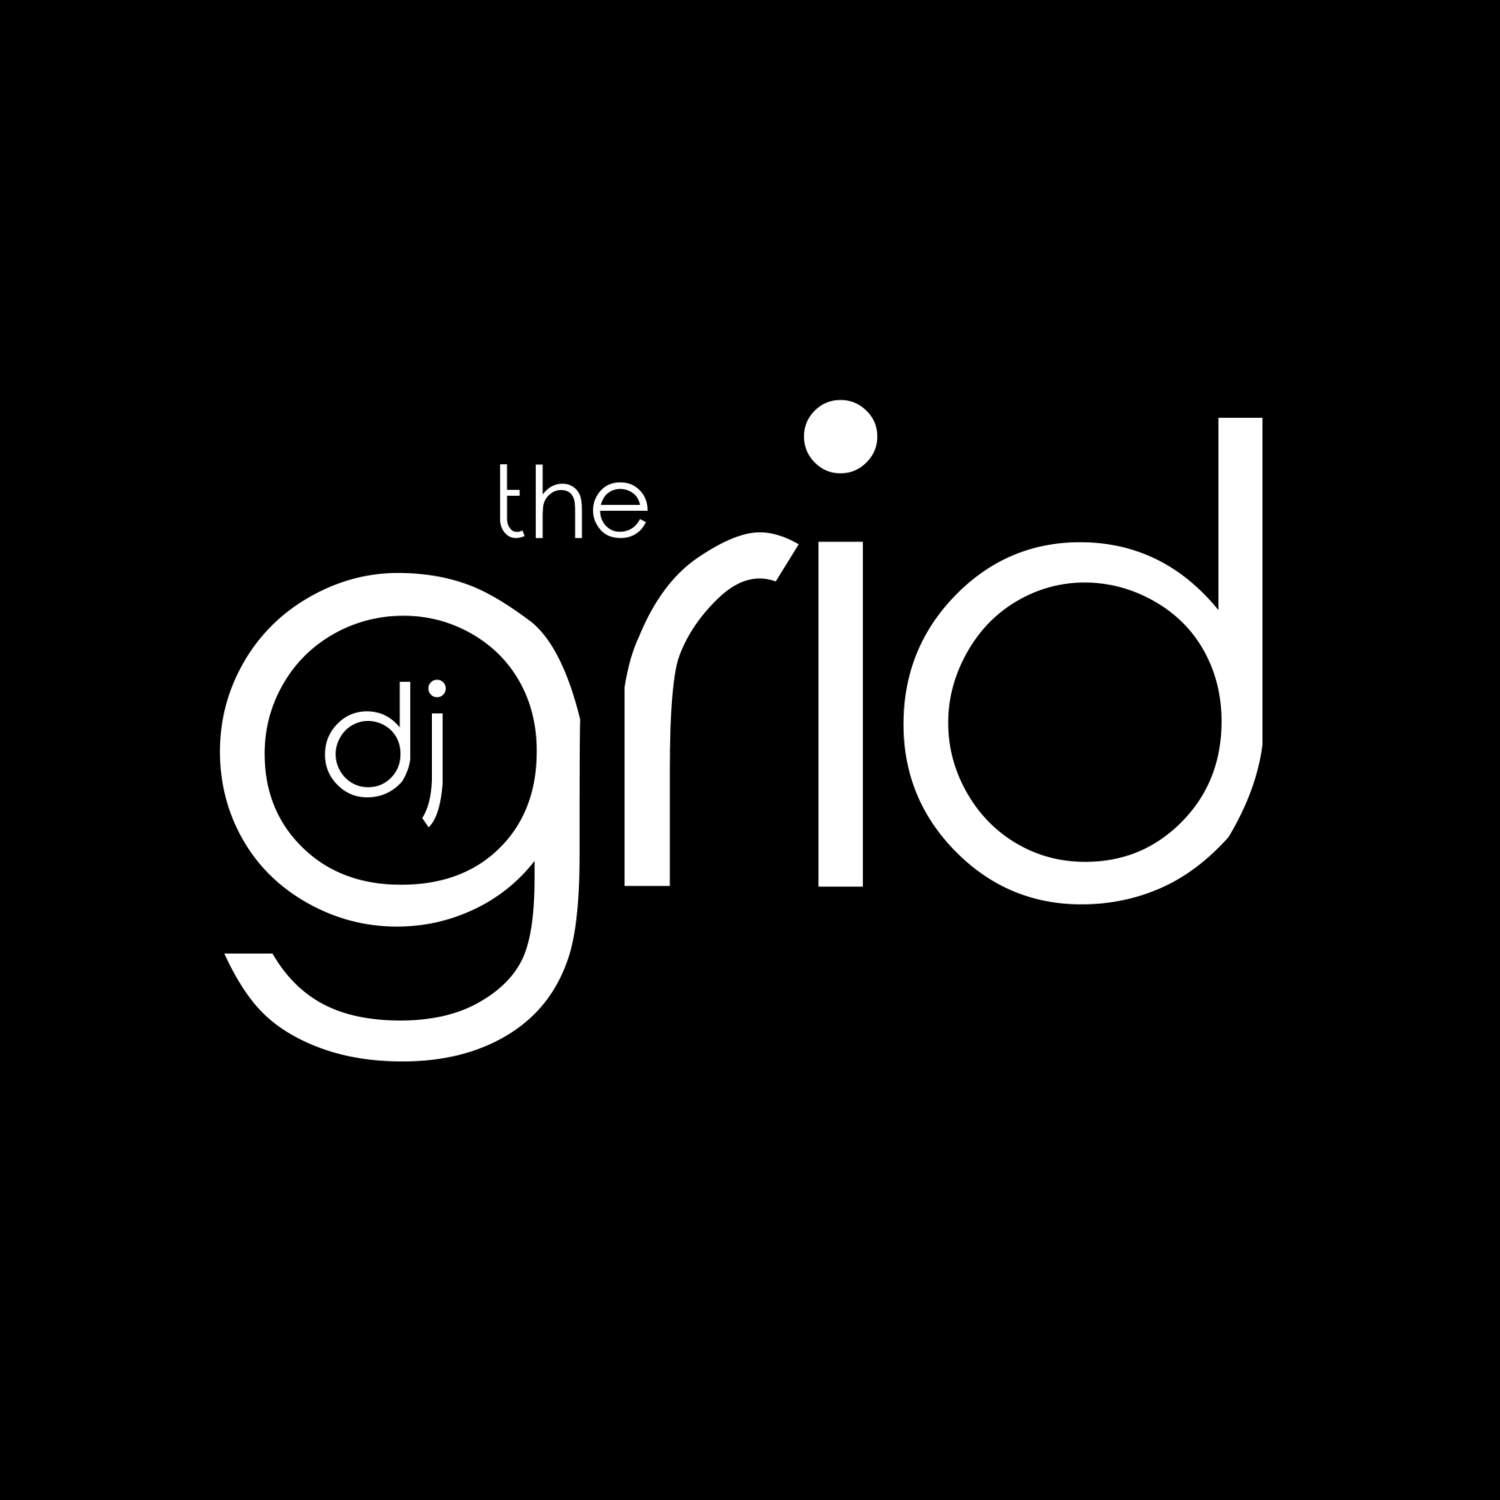 thedjgrid (1).png